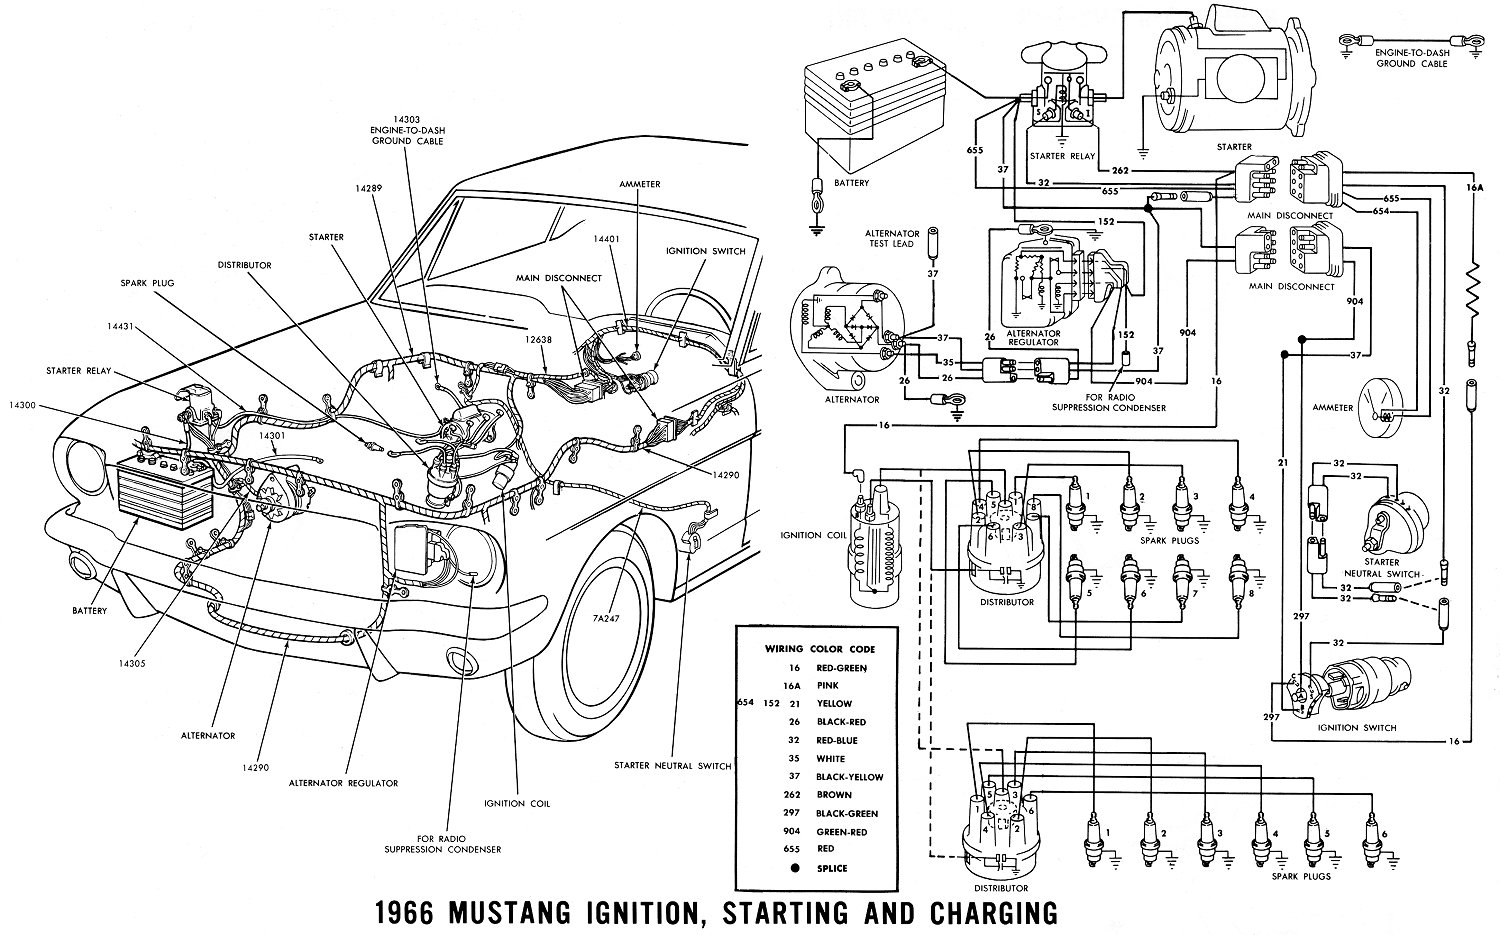 Discussion C5306 ds542845 besides  further Grandamsecurityfix moreover 171707240366 also Mustang Wiring Diagrams. on pontiac grand prix radio wiring diagram